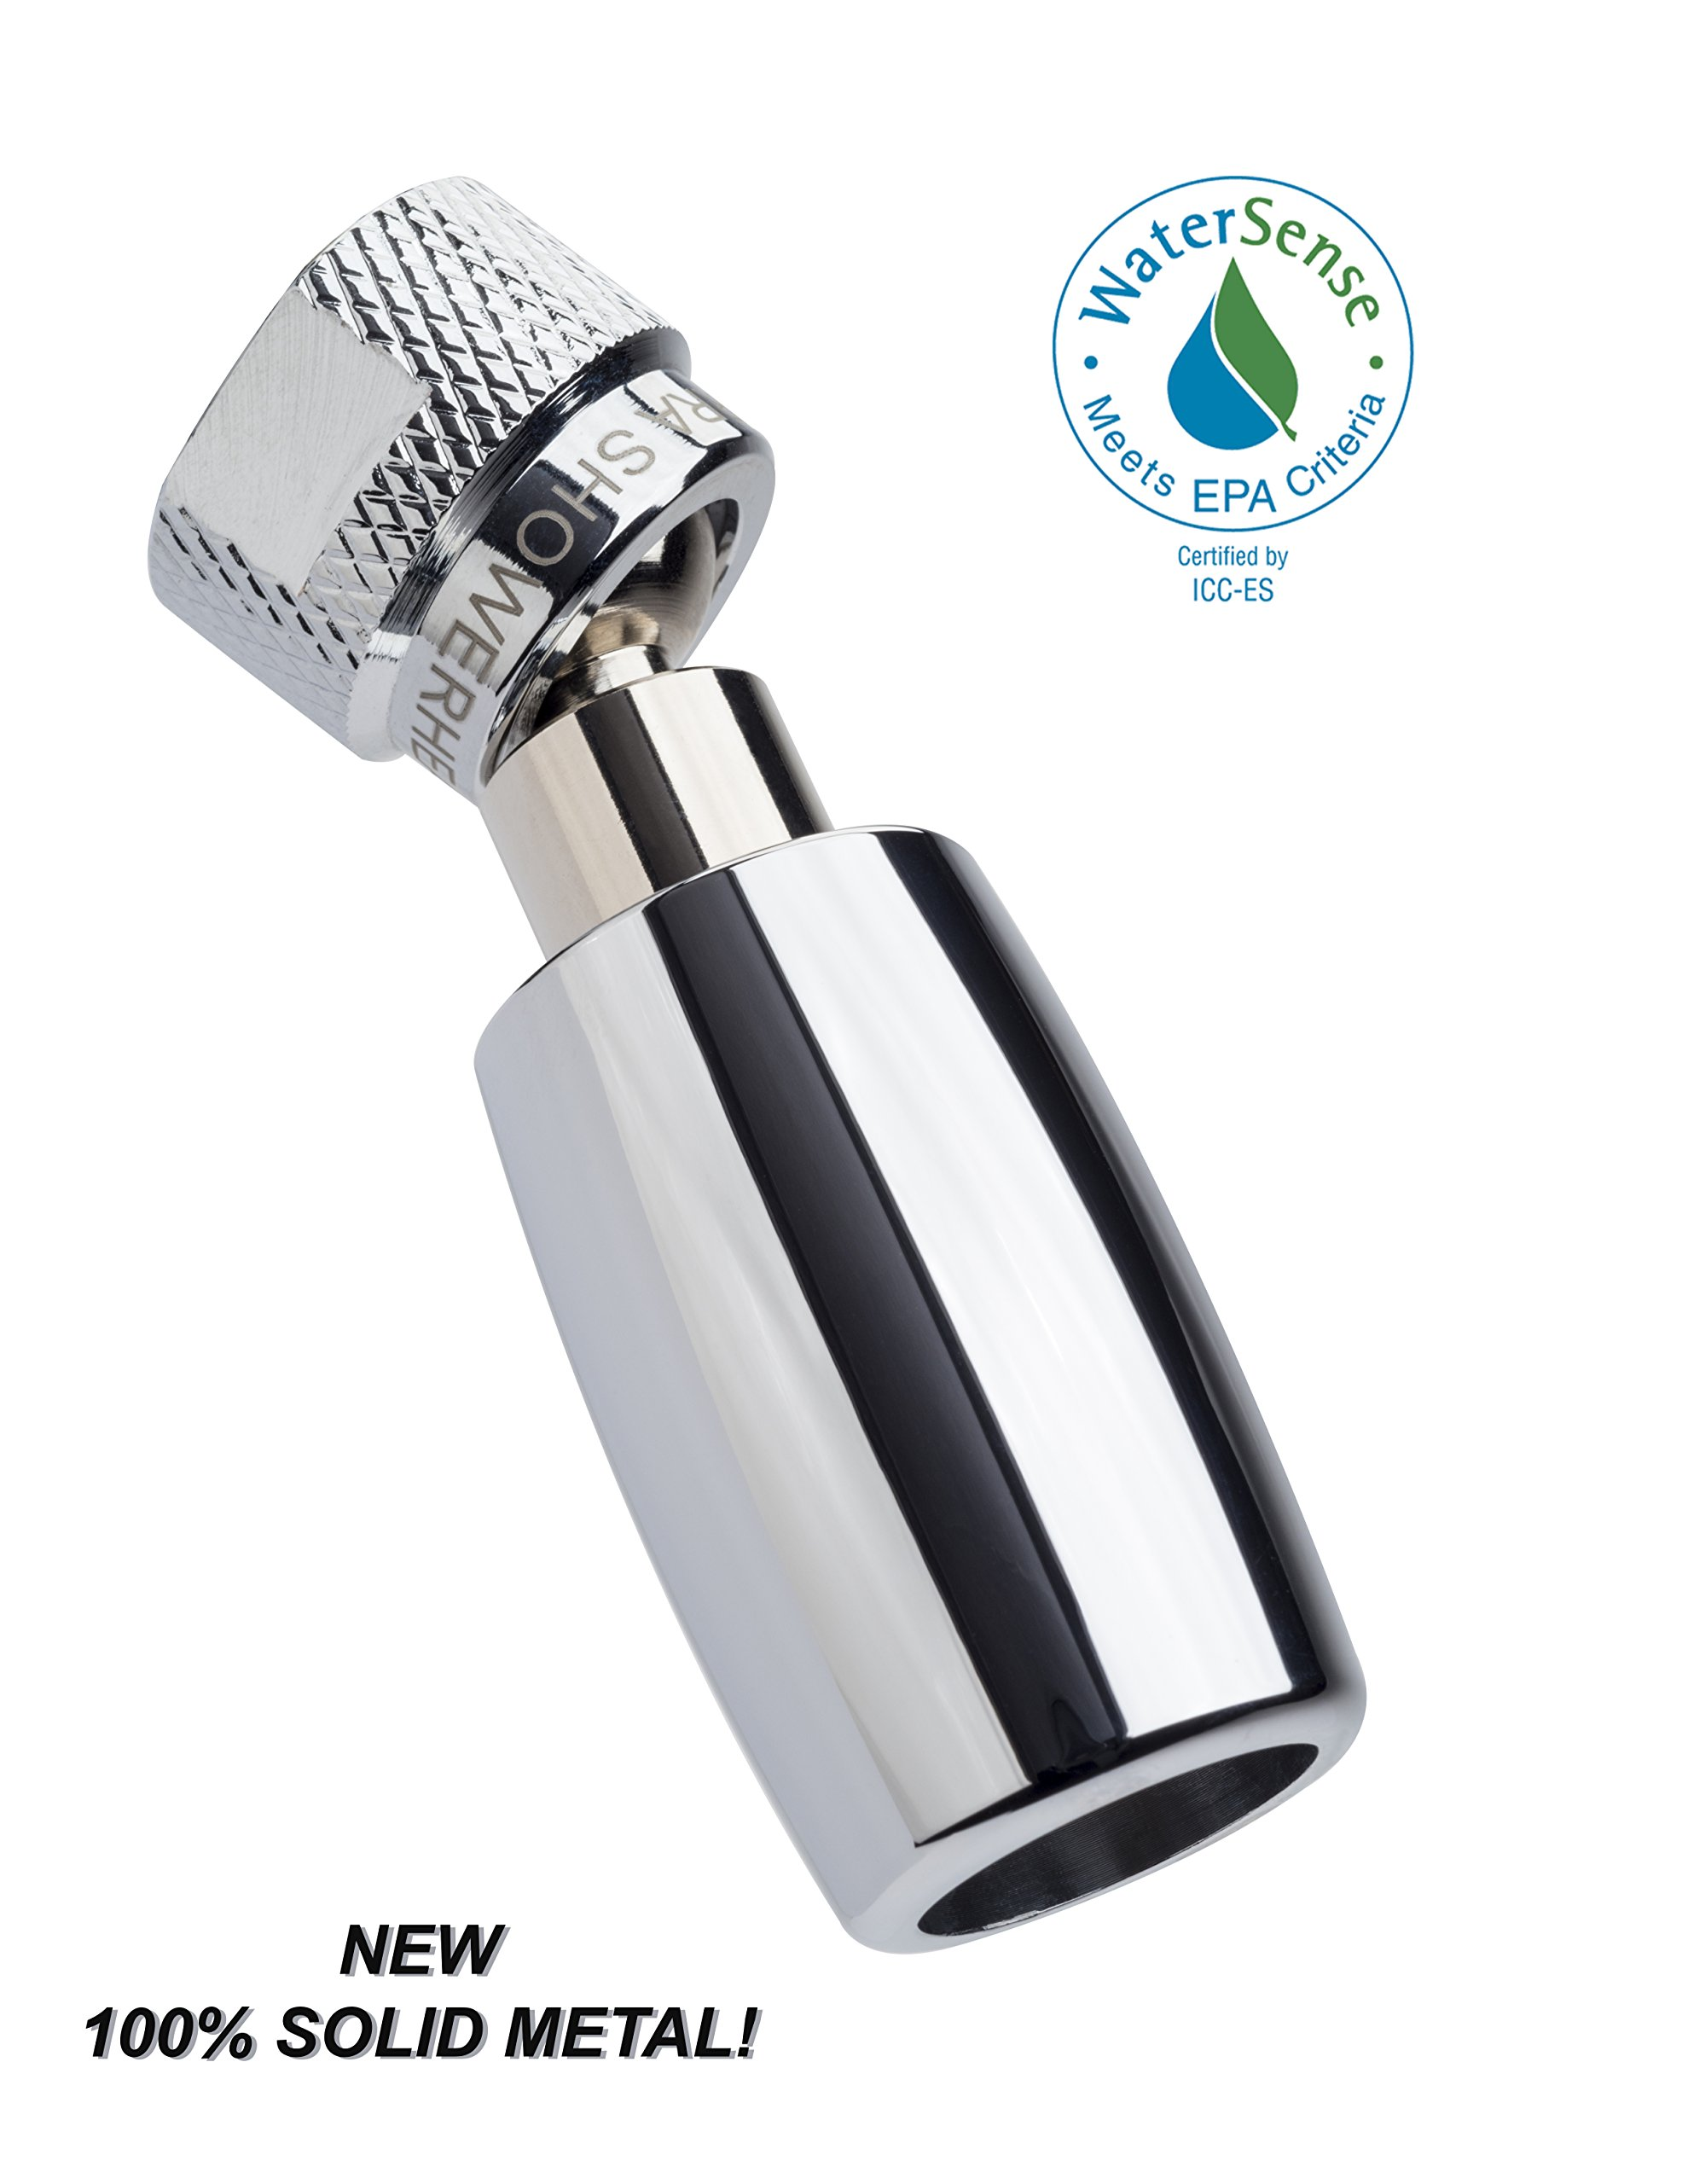 High Sierra's All Metal WaterSense Certified 1.8 GPM High Efficiency Low Flow Showerhead. Available in: CHROME, Brushed Nickel, Oil Rubbed Bronze, or Polished Brass